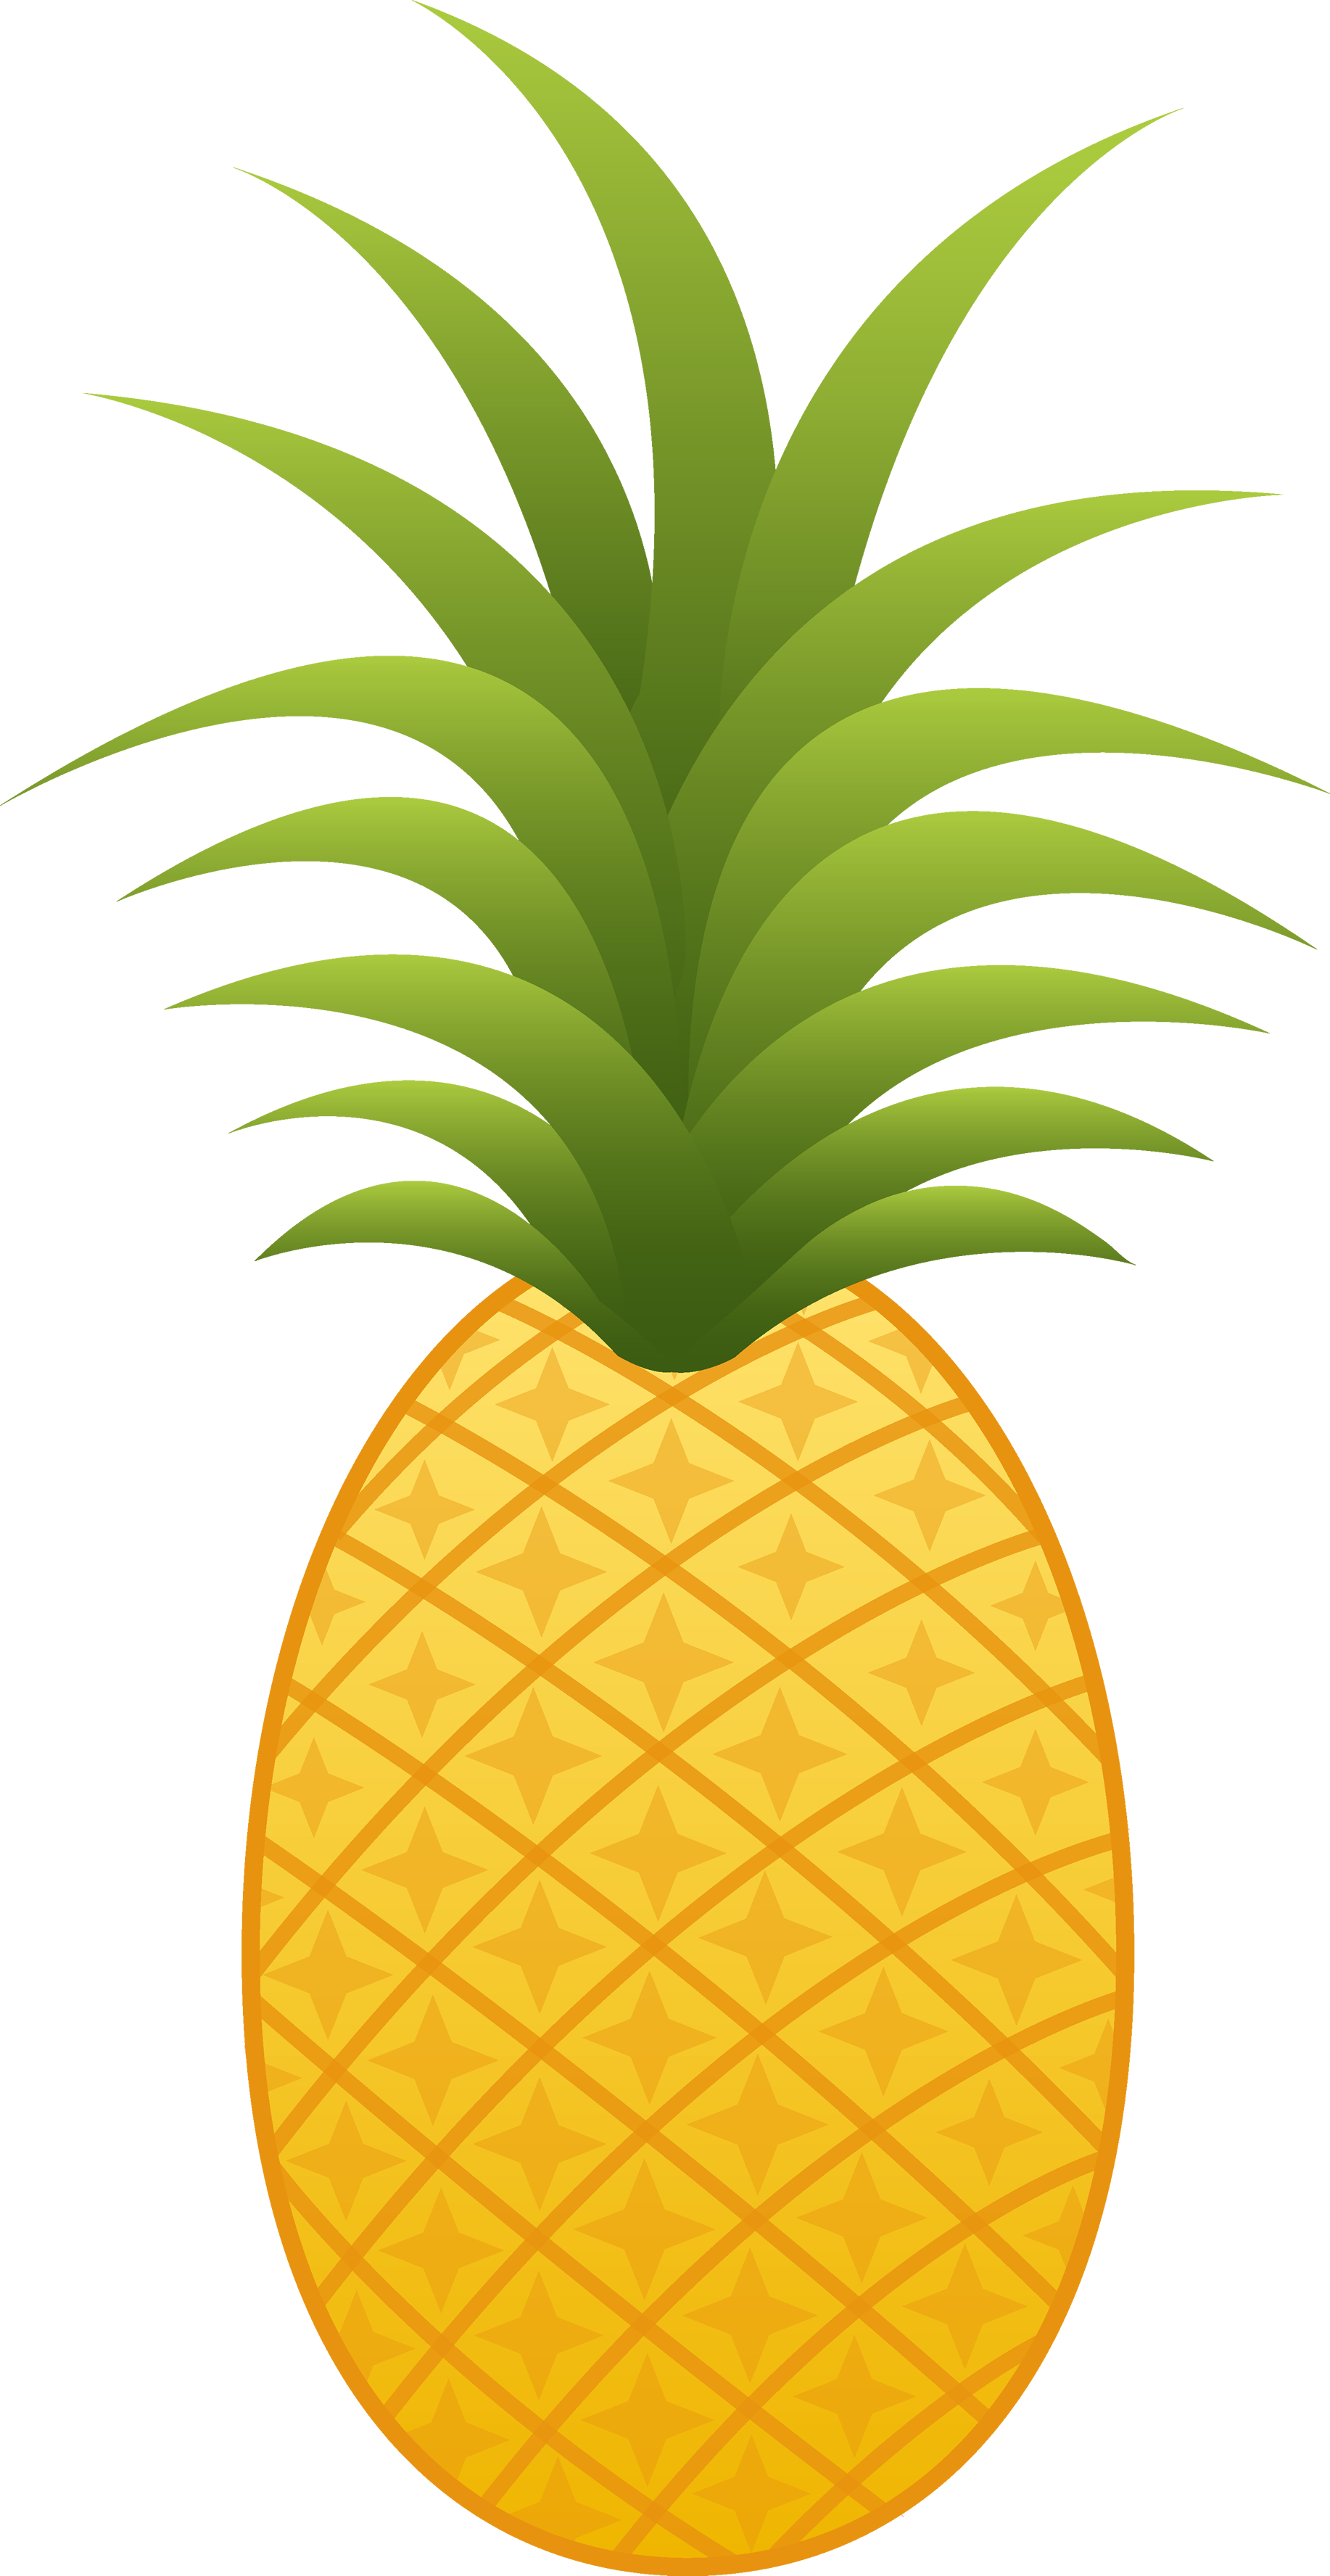 Pineapple png. Images free pictures download